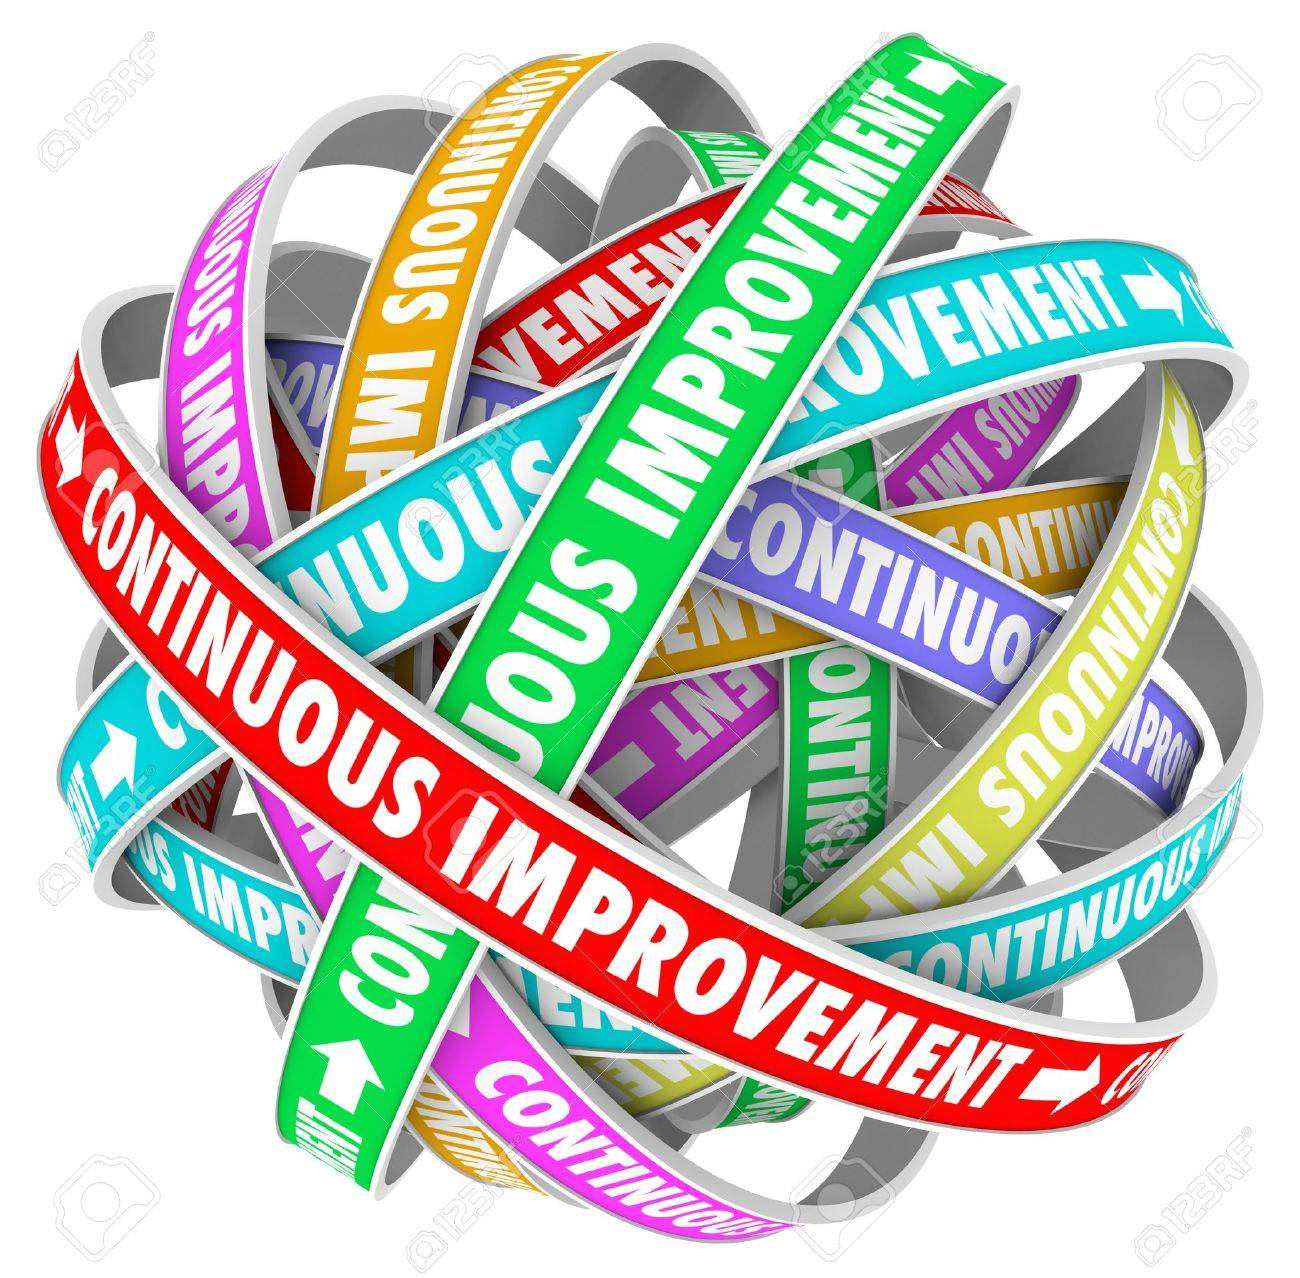 The words Continuous Improvement on circular ribbons in an everlasting pattern to illustrate everlasting change and innovation to better yourself, company or organization Stock Photo - 20163300